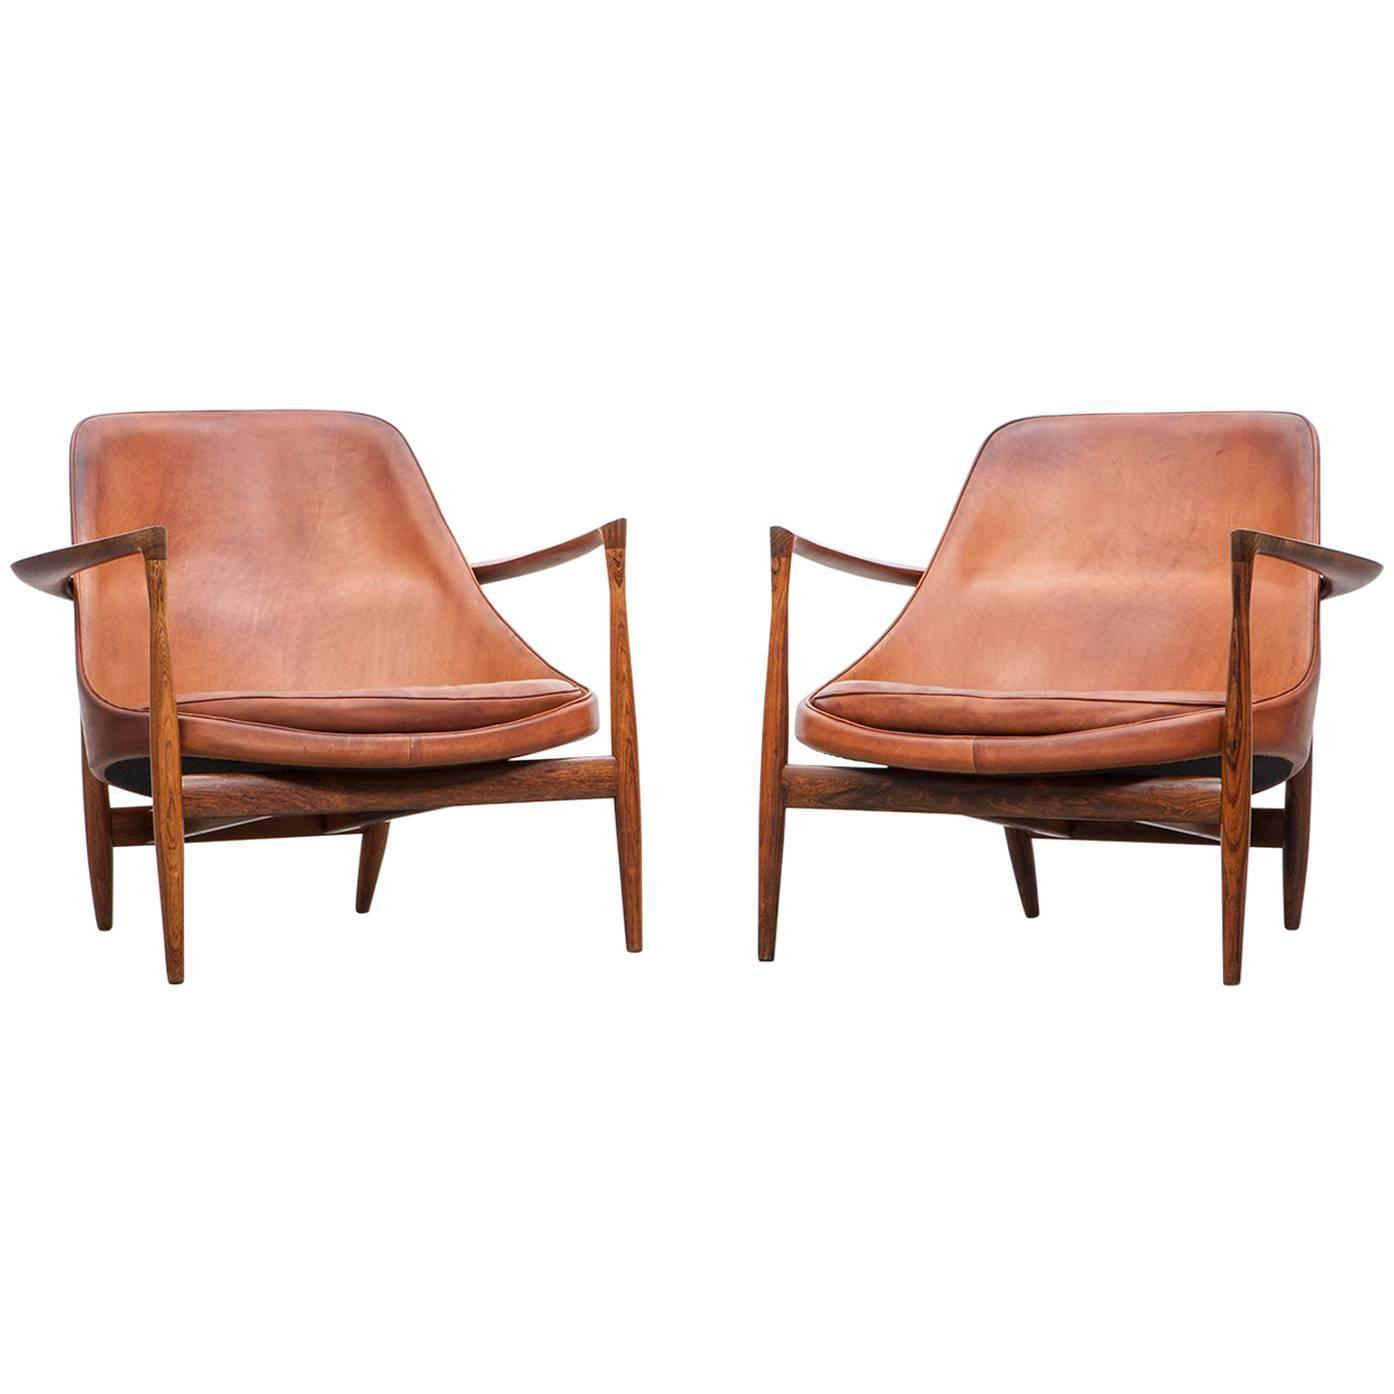 This sculptural pair of lounge chairs by ib kofod larsen is no longer - 1950 S Brown Wooden And Leather Pair Of Lounge Chairs By Ib Kofod Larsen For Sale At 1stdibs